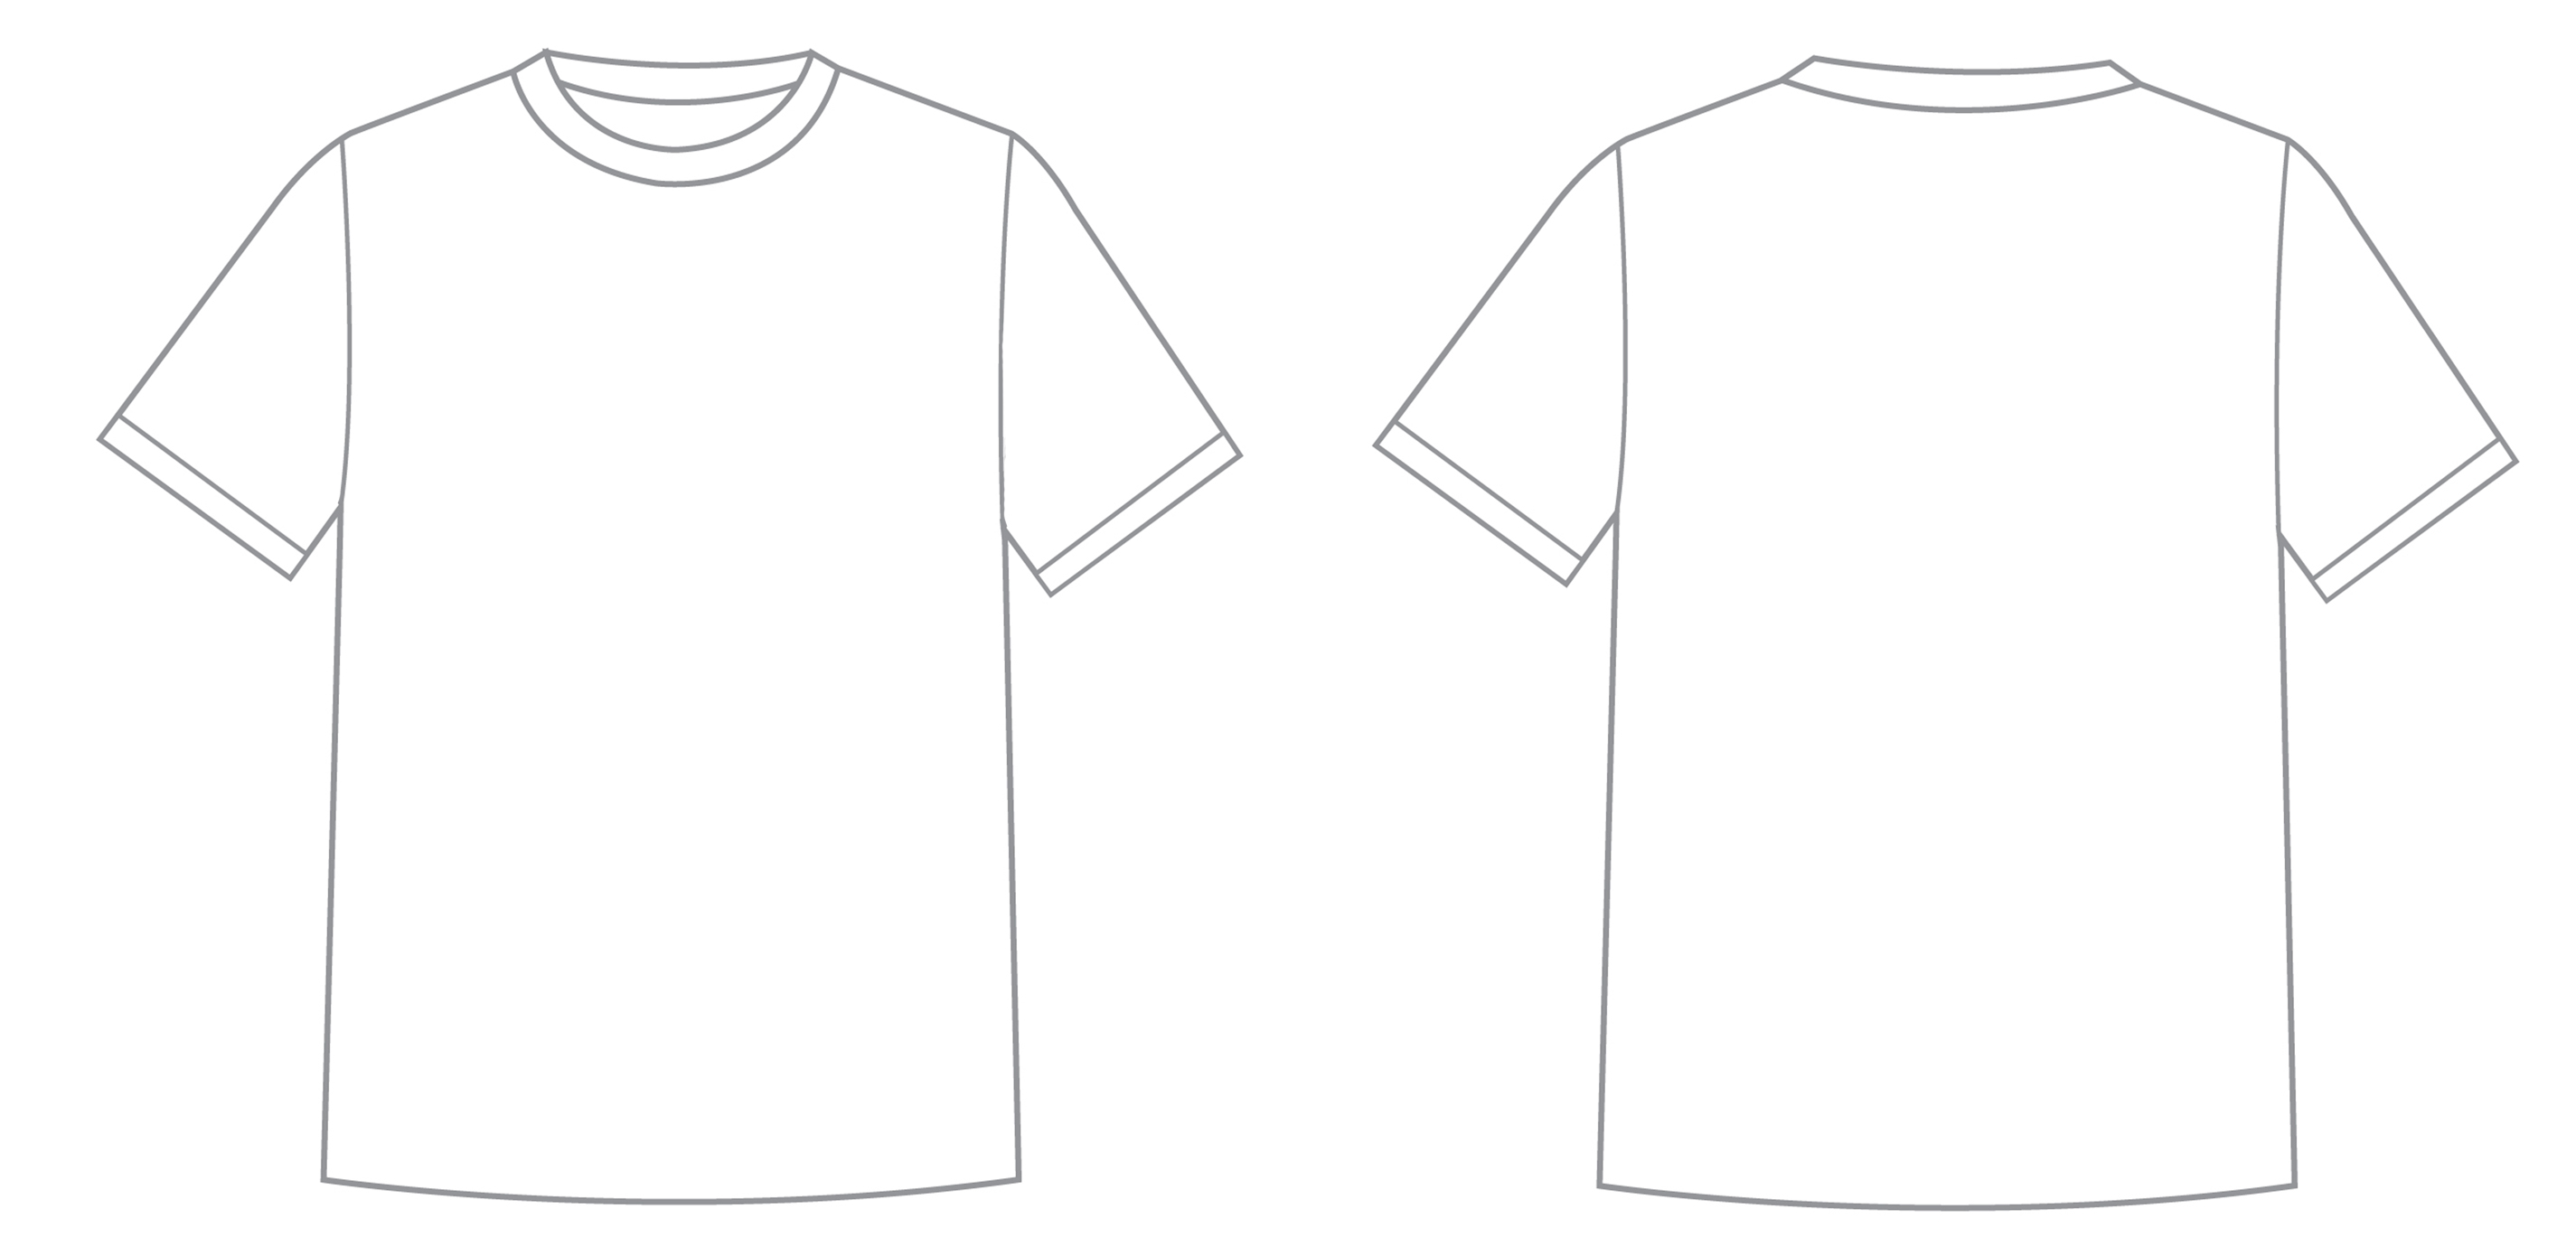 T-Shirt Template Illustrator